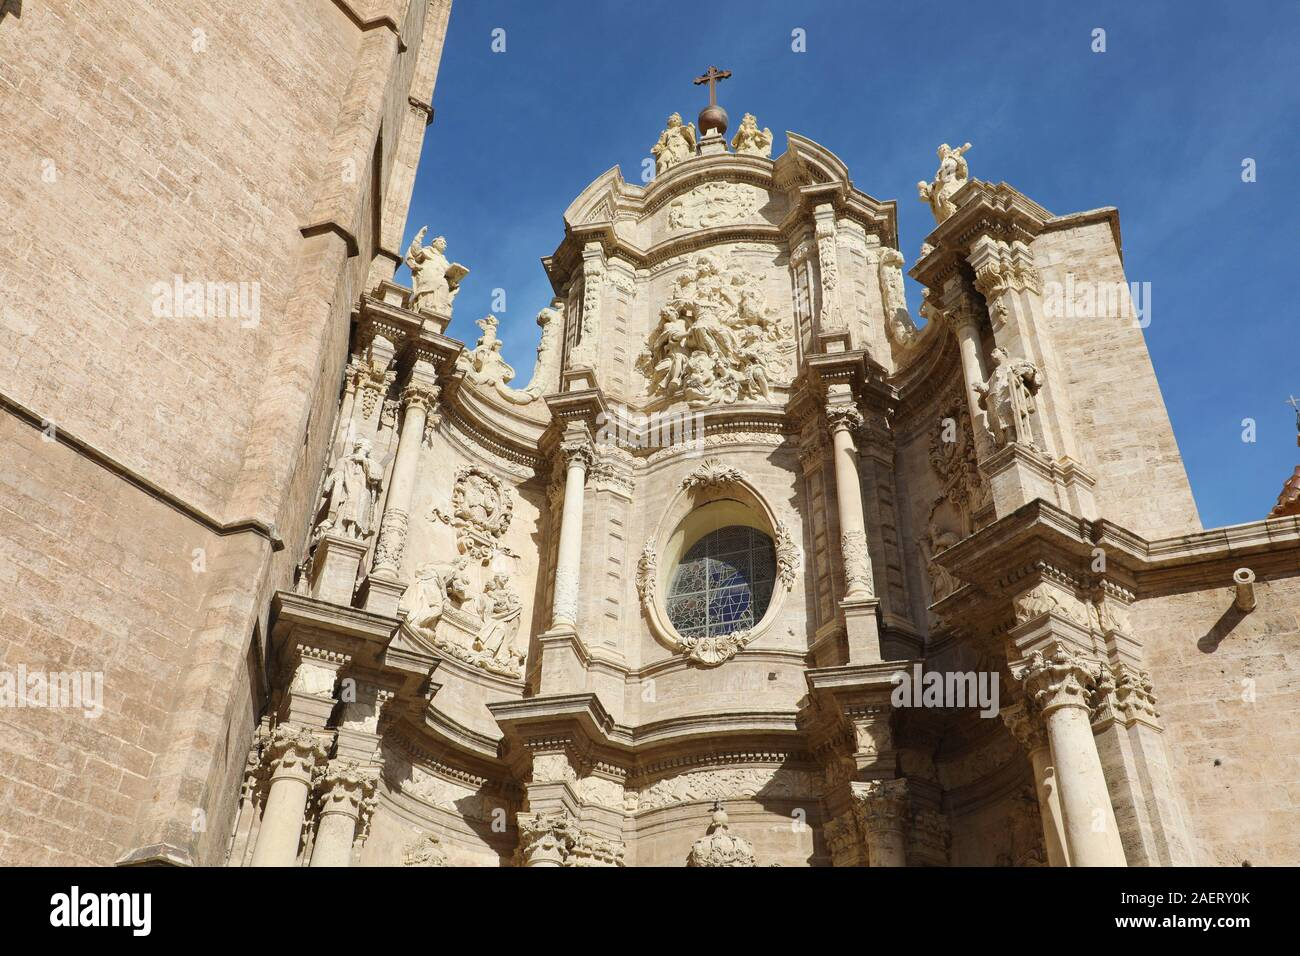 Saint Mary Cathedral detail in Valencia, Spain. Baroque style architecture. Stock Photo